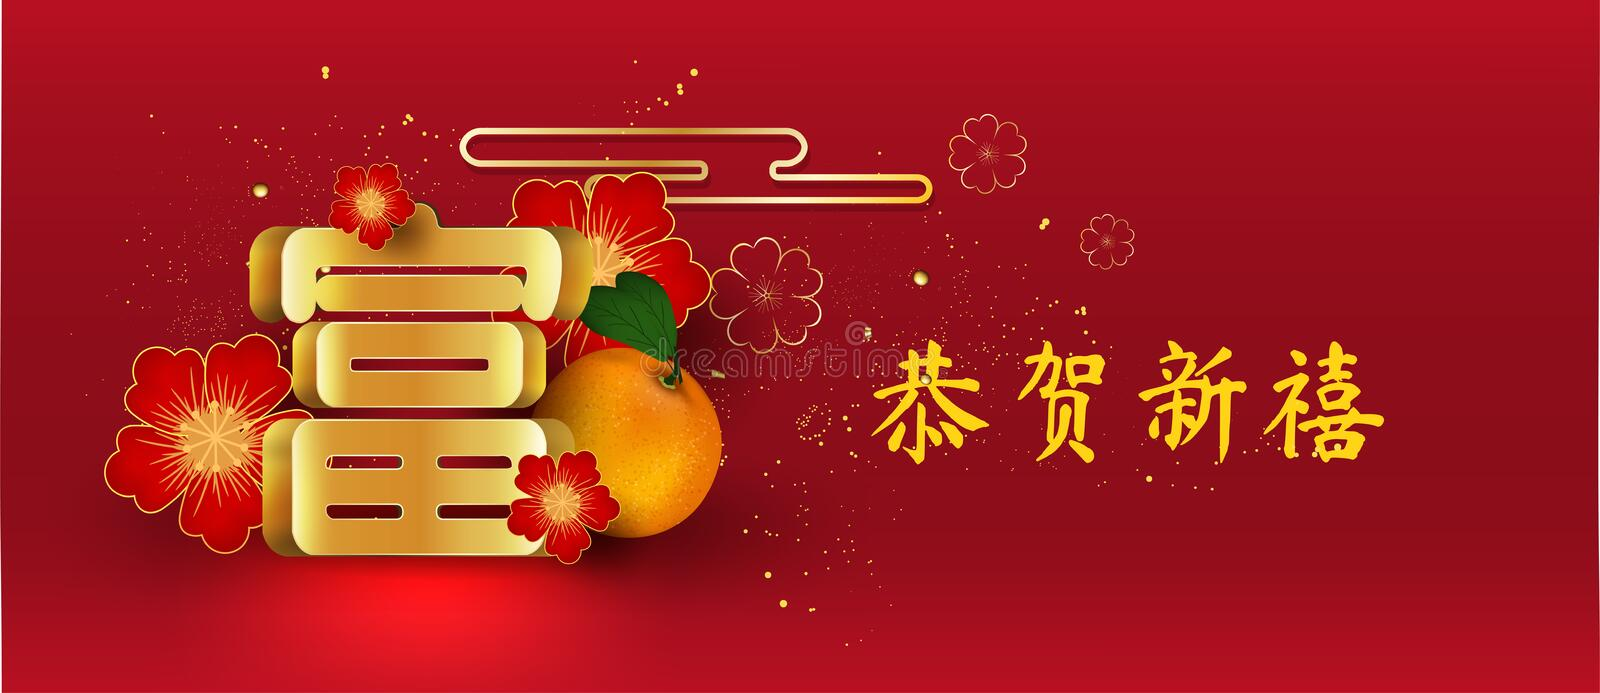 2020 Chinese new year with auspicious alphabet and ancient Chinese coins,symbols of wealth with auspicious fruit oranges, year of stock illustration